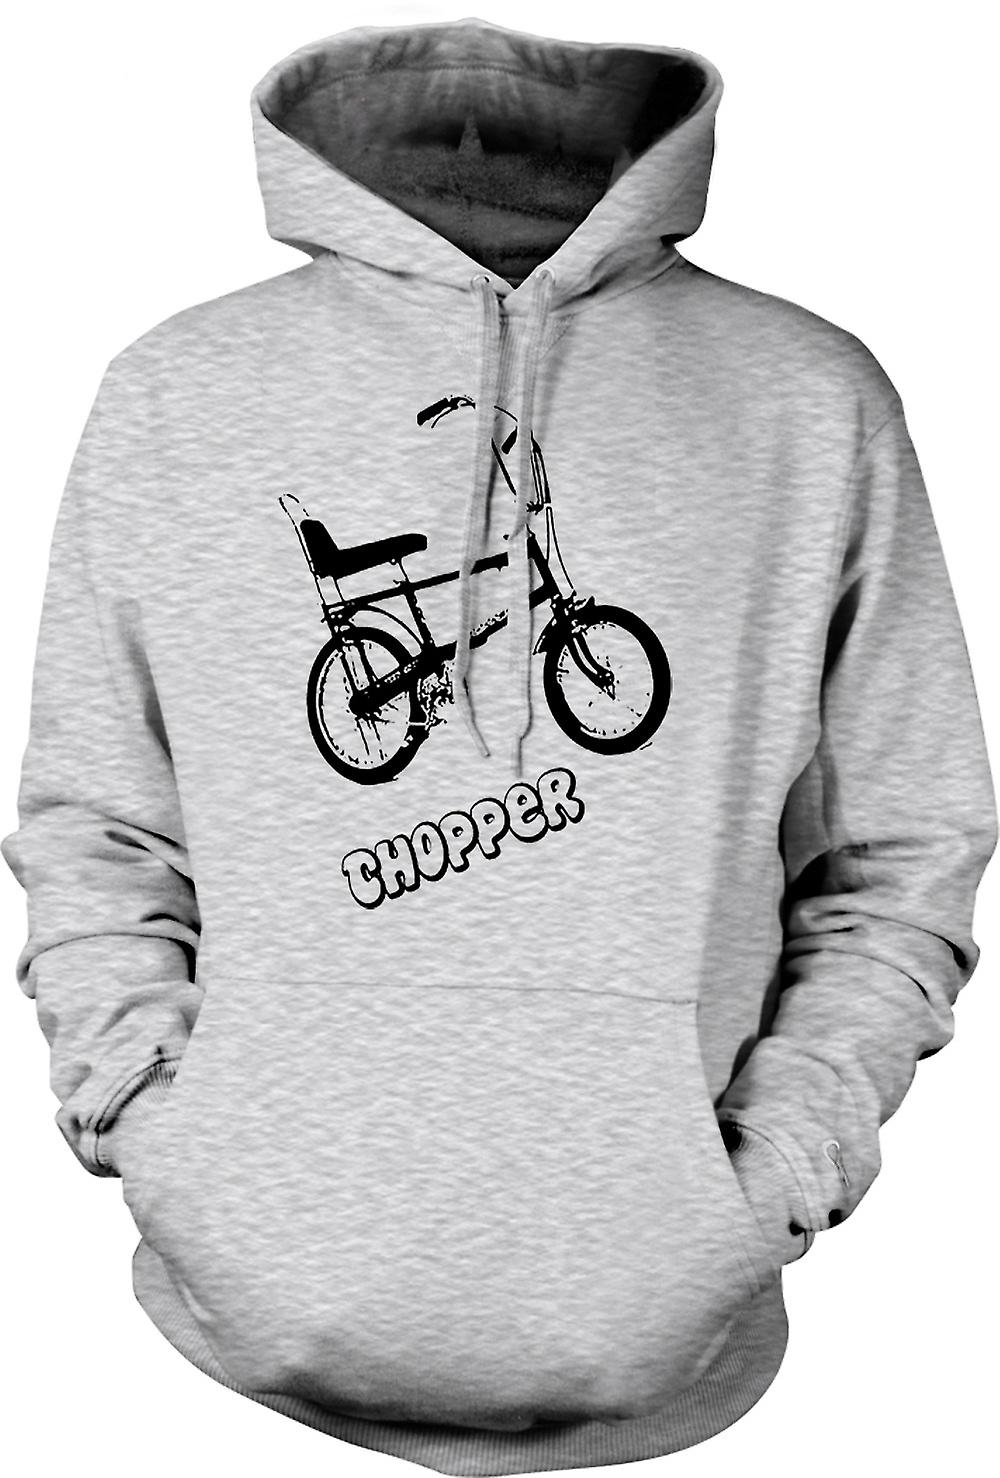 Mens Hoodie - Chopper - Old Skool - Retro bici